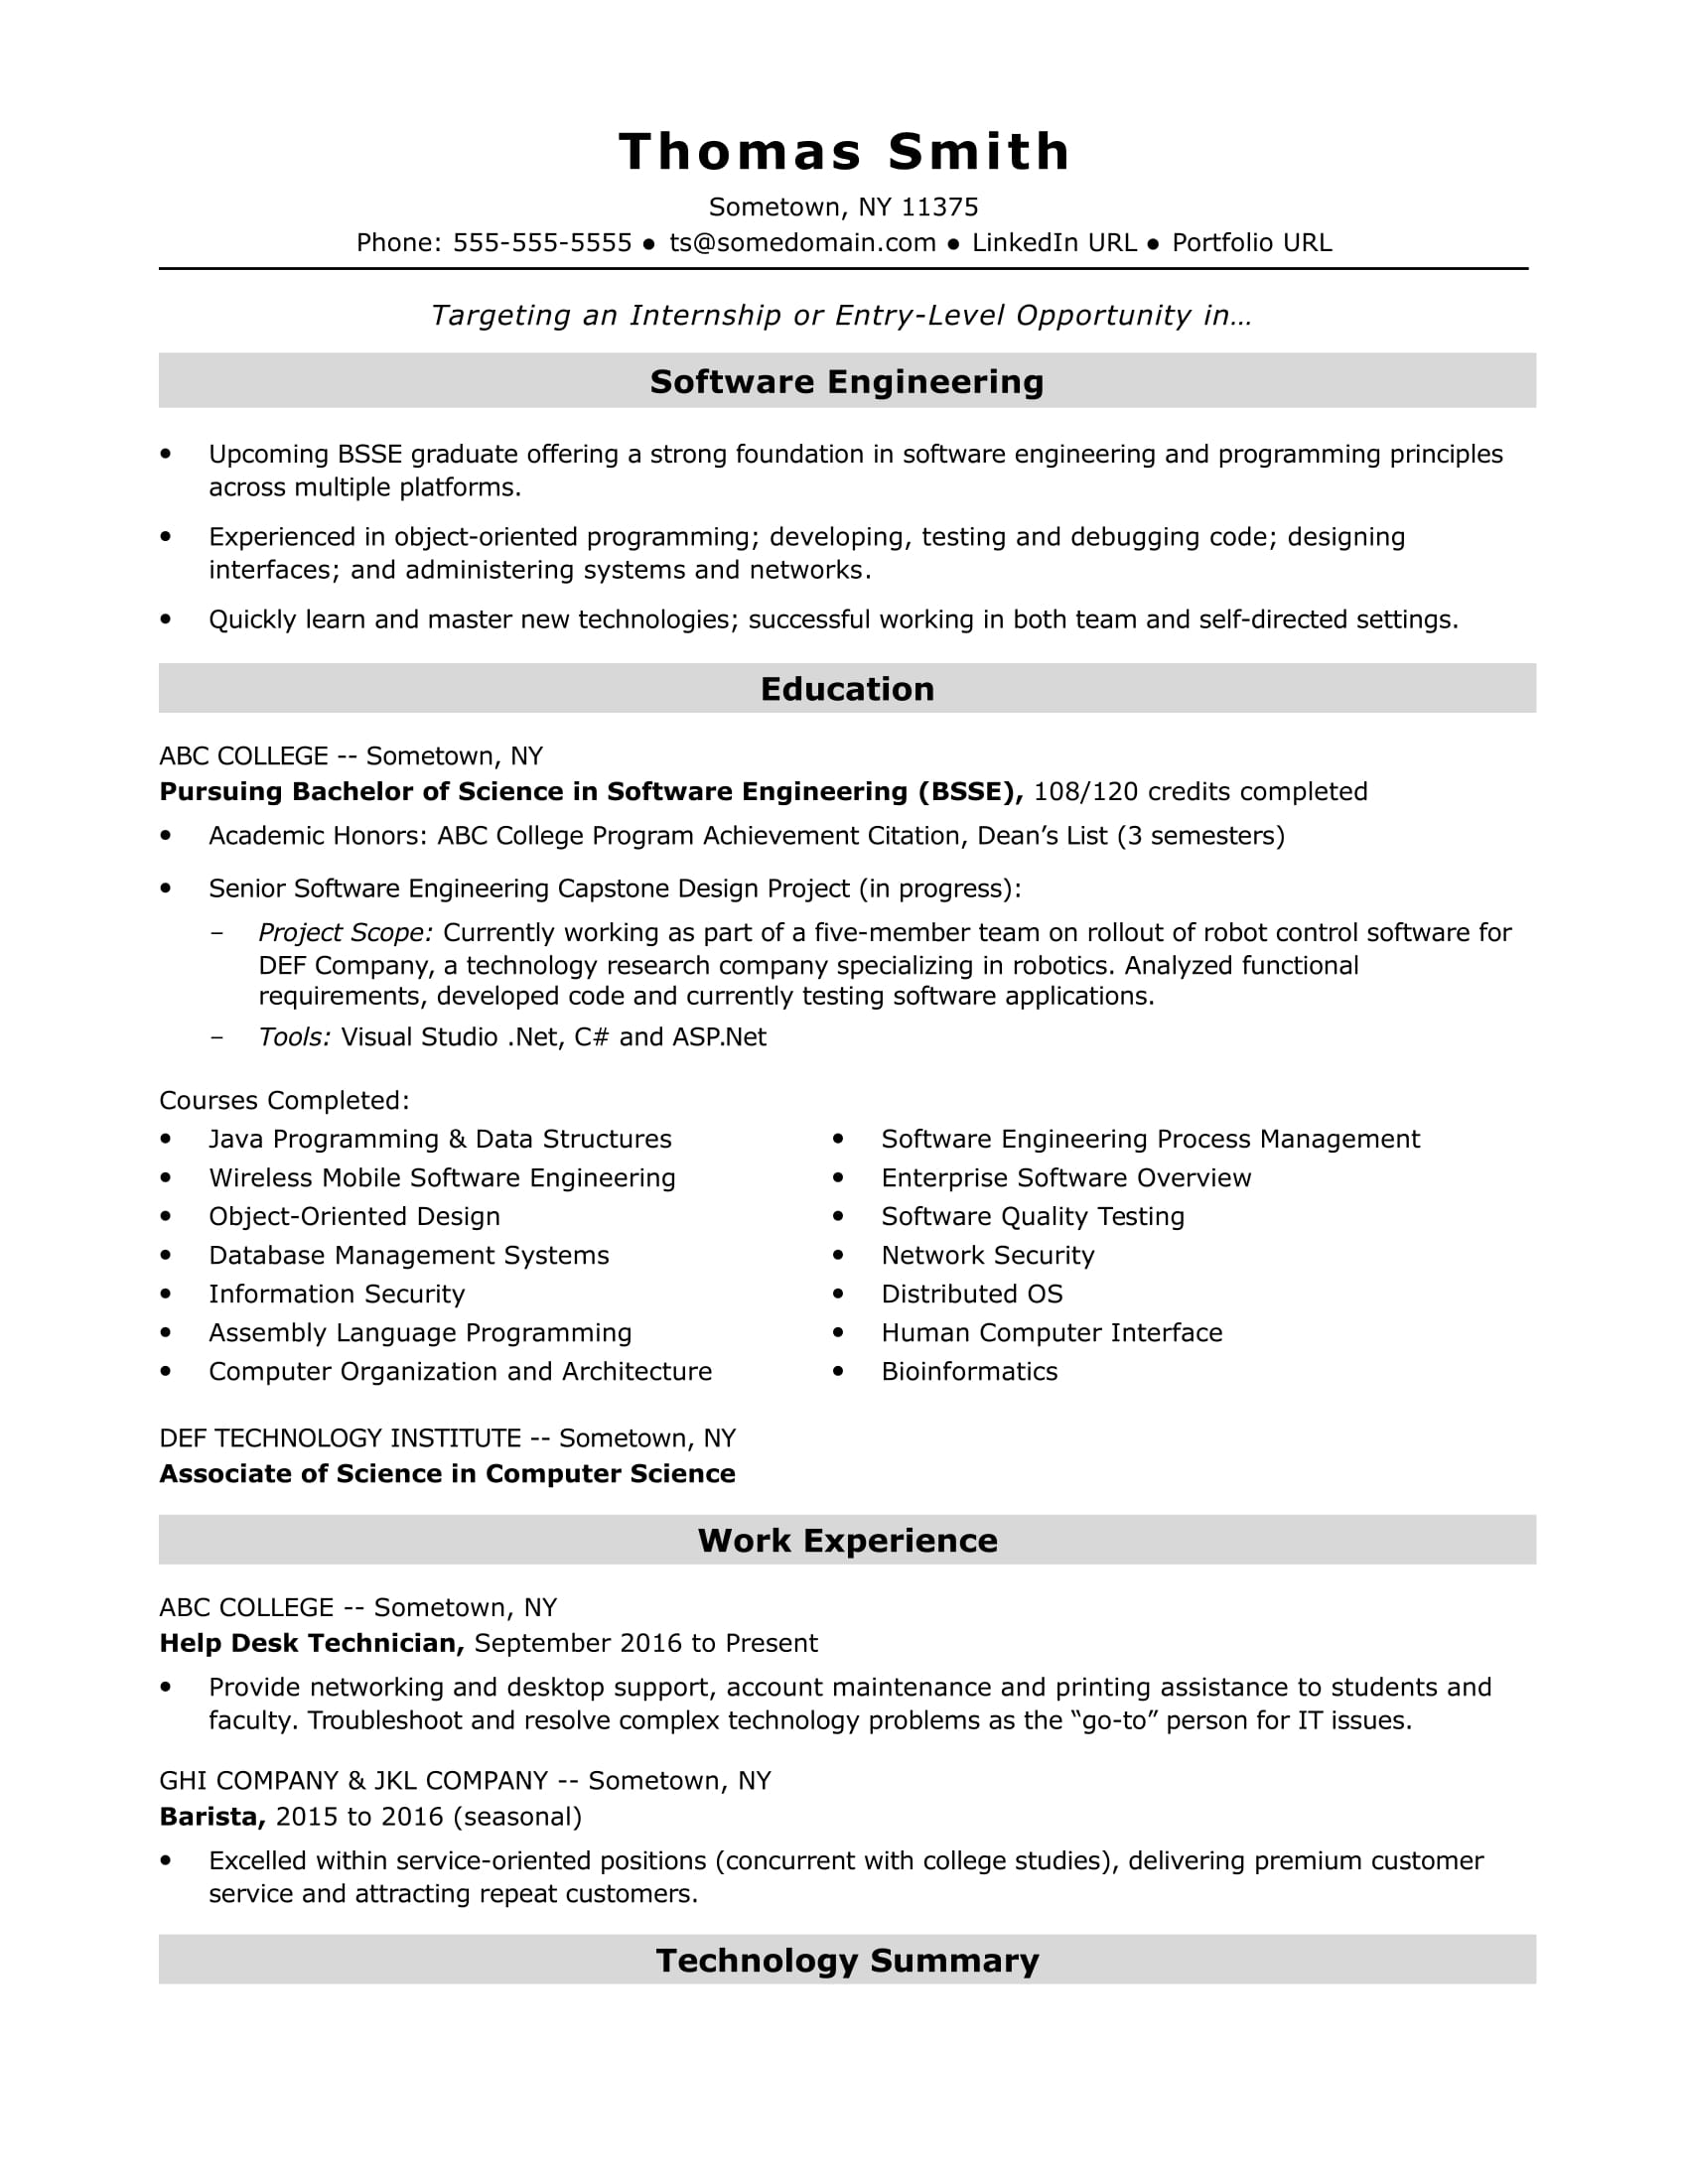 Entry Level Software Engineer Resume Sample | Monster.com